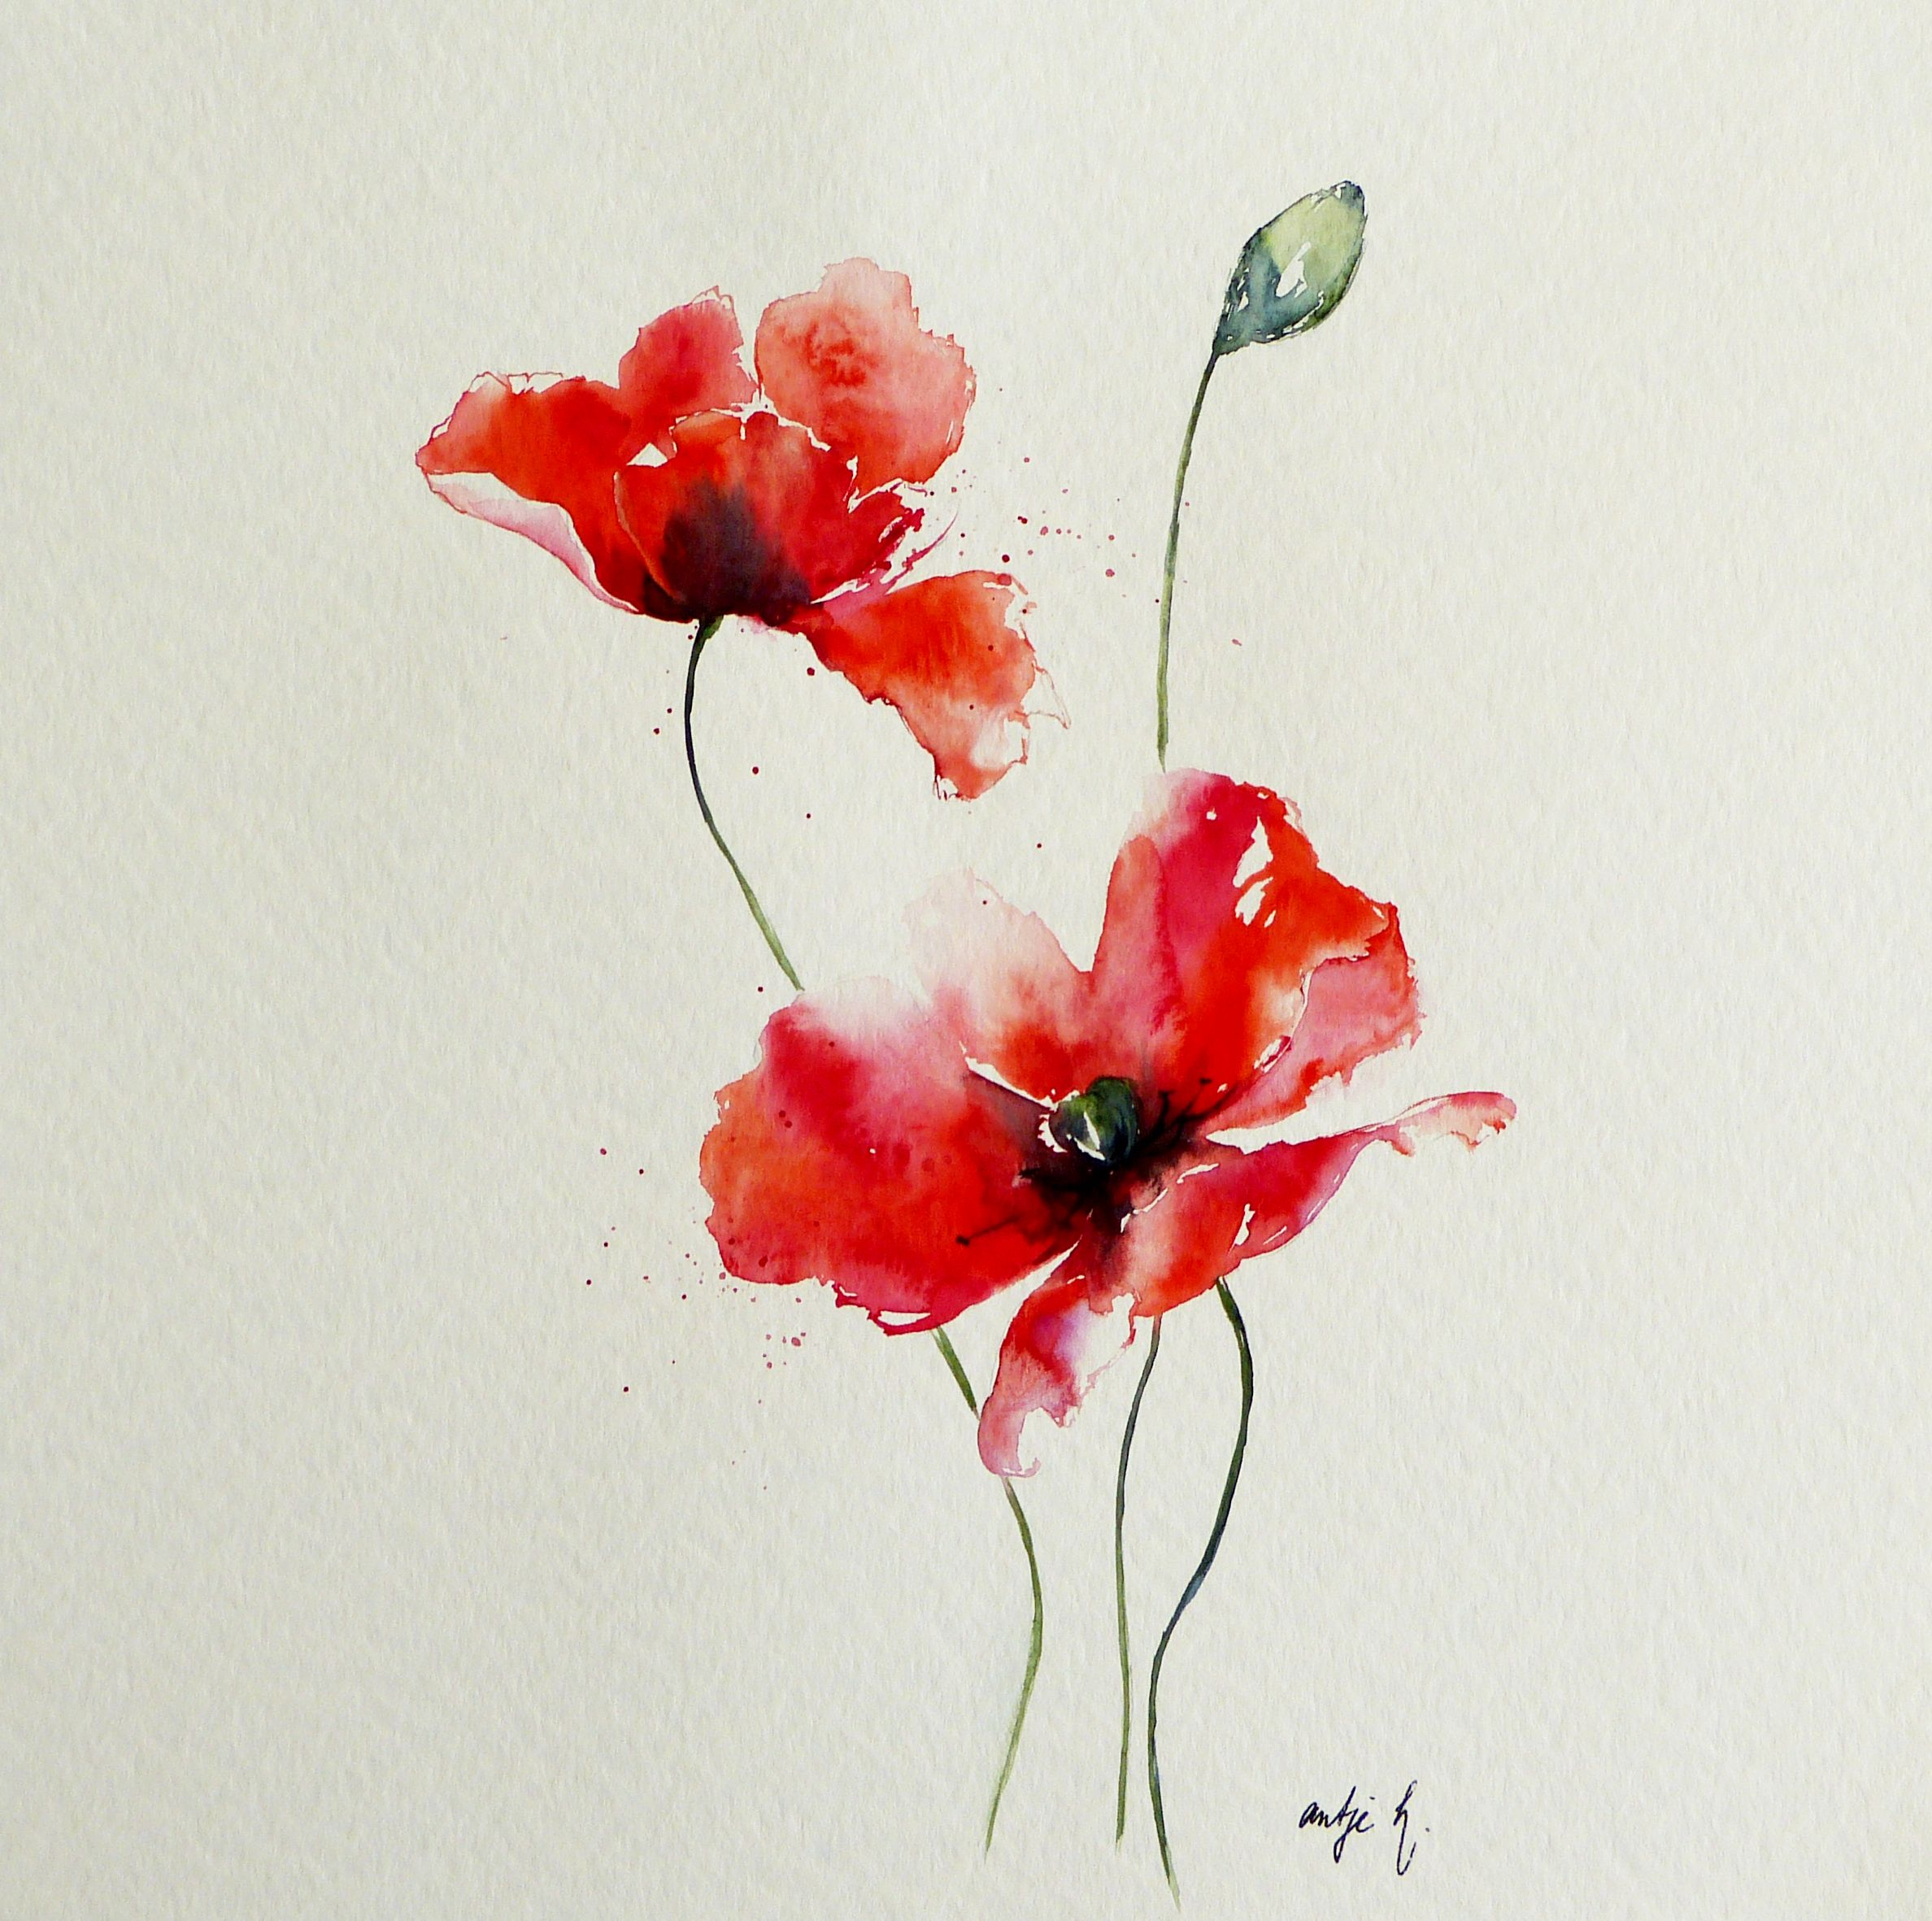 Mohnkomposition Ii Watercolor 40x40 Antje Hettner Aquarell Watercolor Kunst Malerei Blumen Original Flowers Painting Aquarell Kunst Aquarell Blumen Aquarell